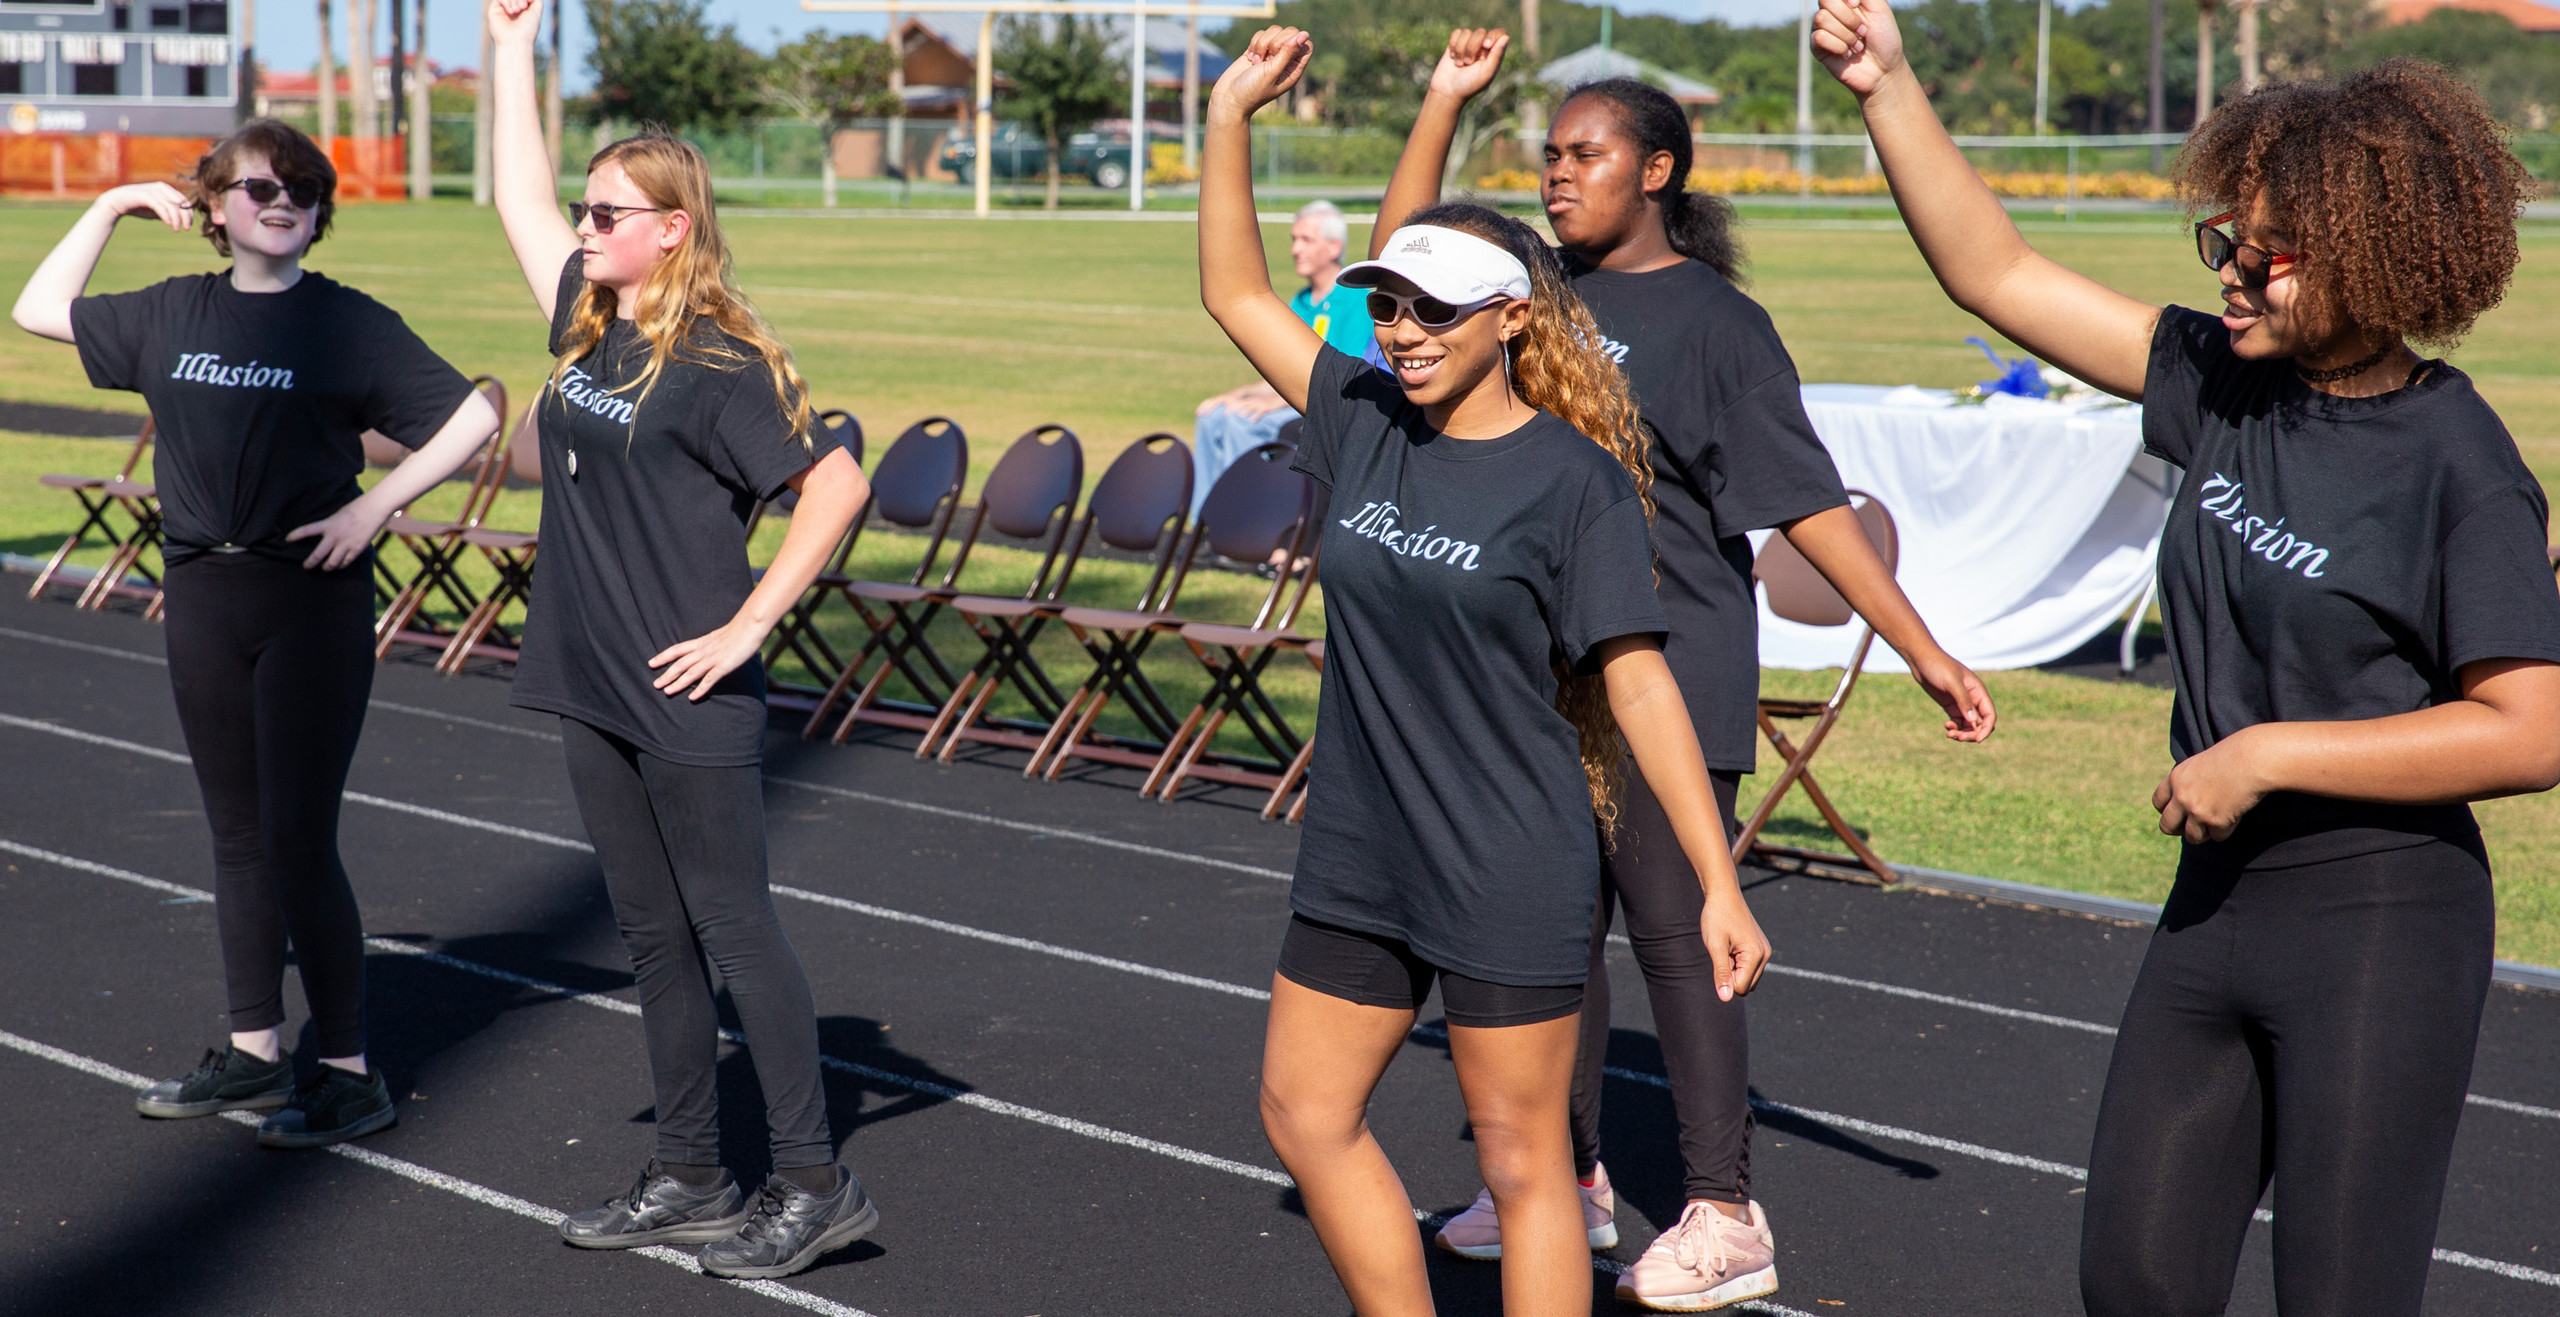 Illusion members dancing on the track.